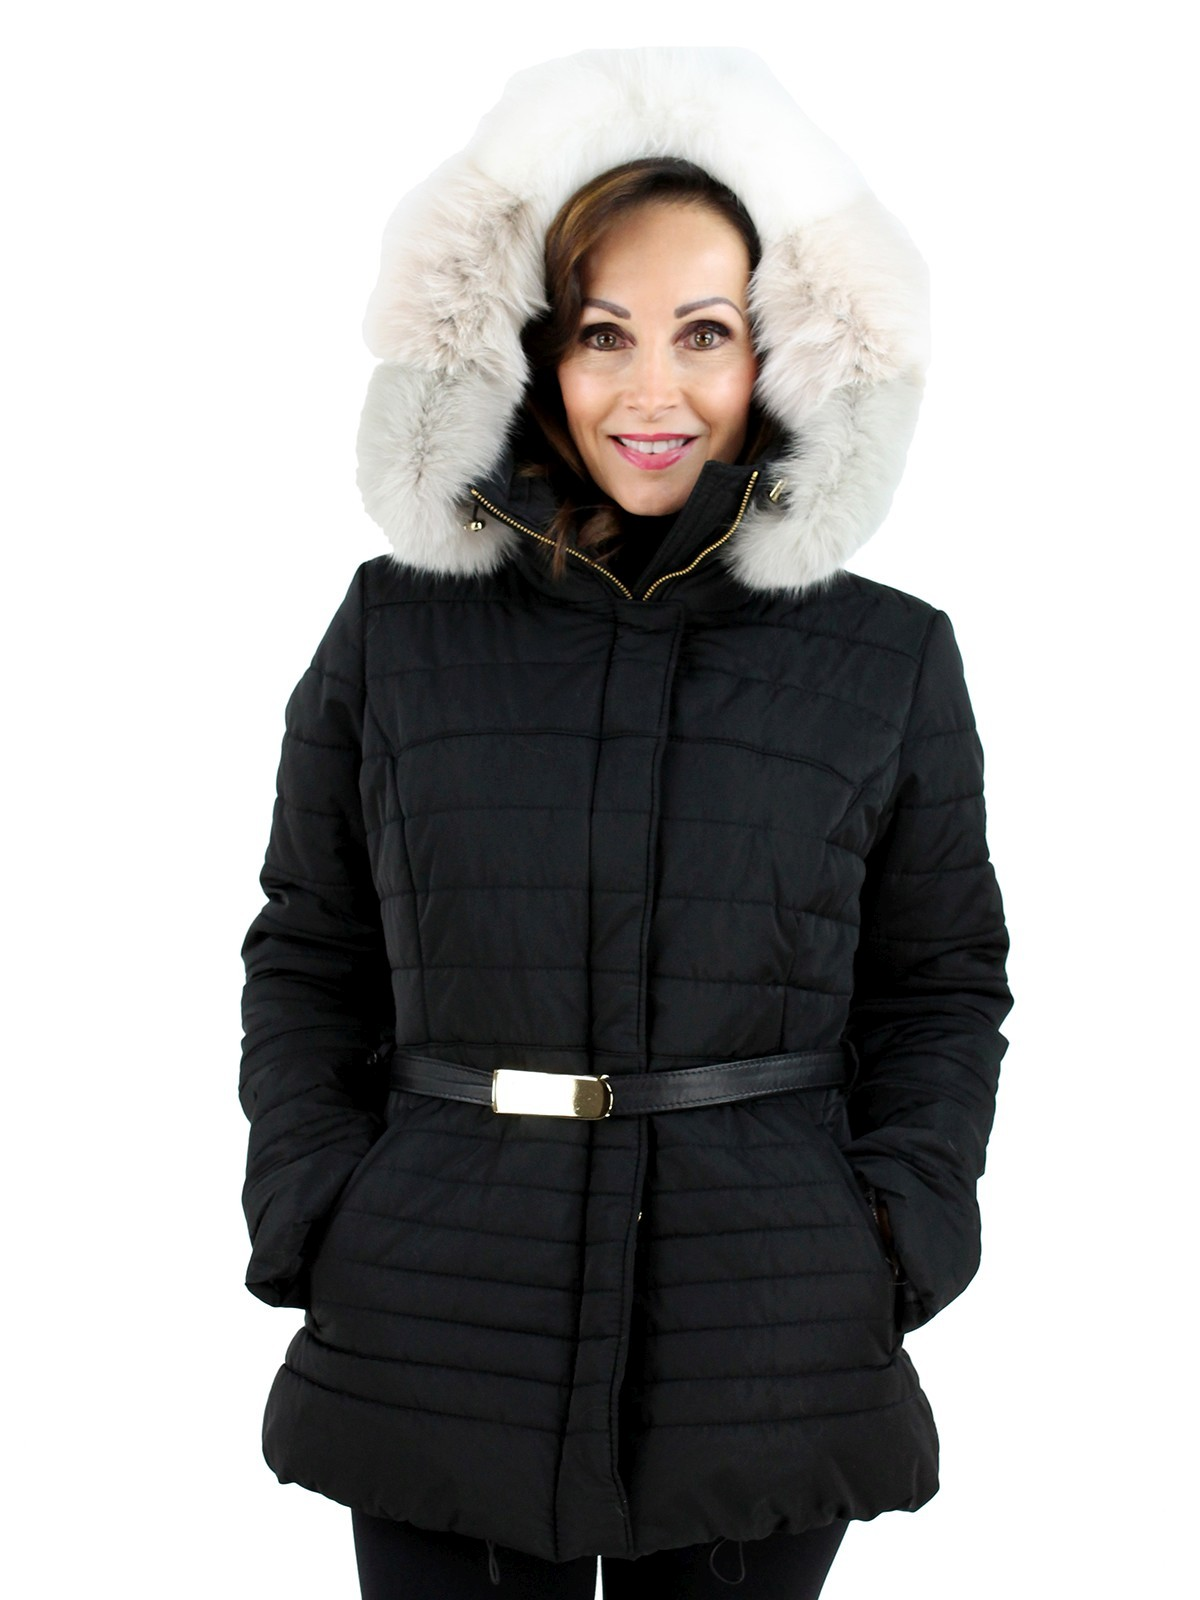 Gorski Woman's Black Quilted Fabric Apres-Ski Jacket with White Fox Trimmed Hood